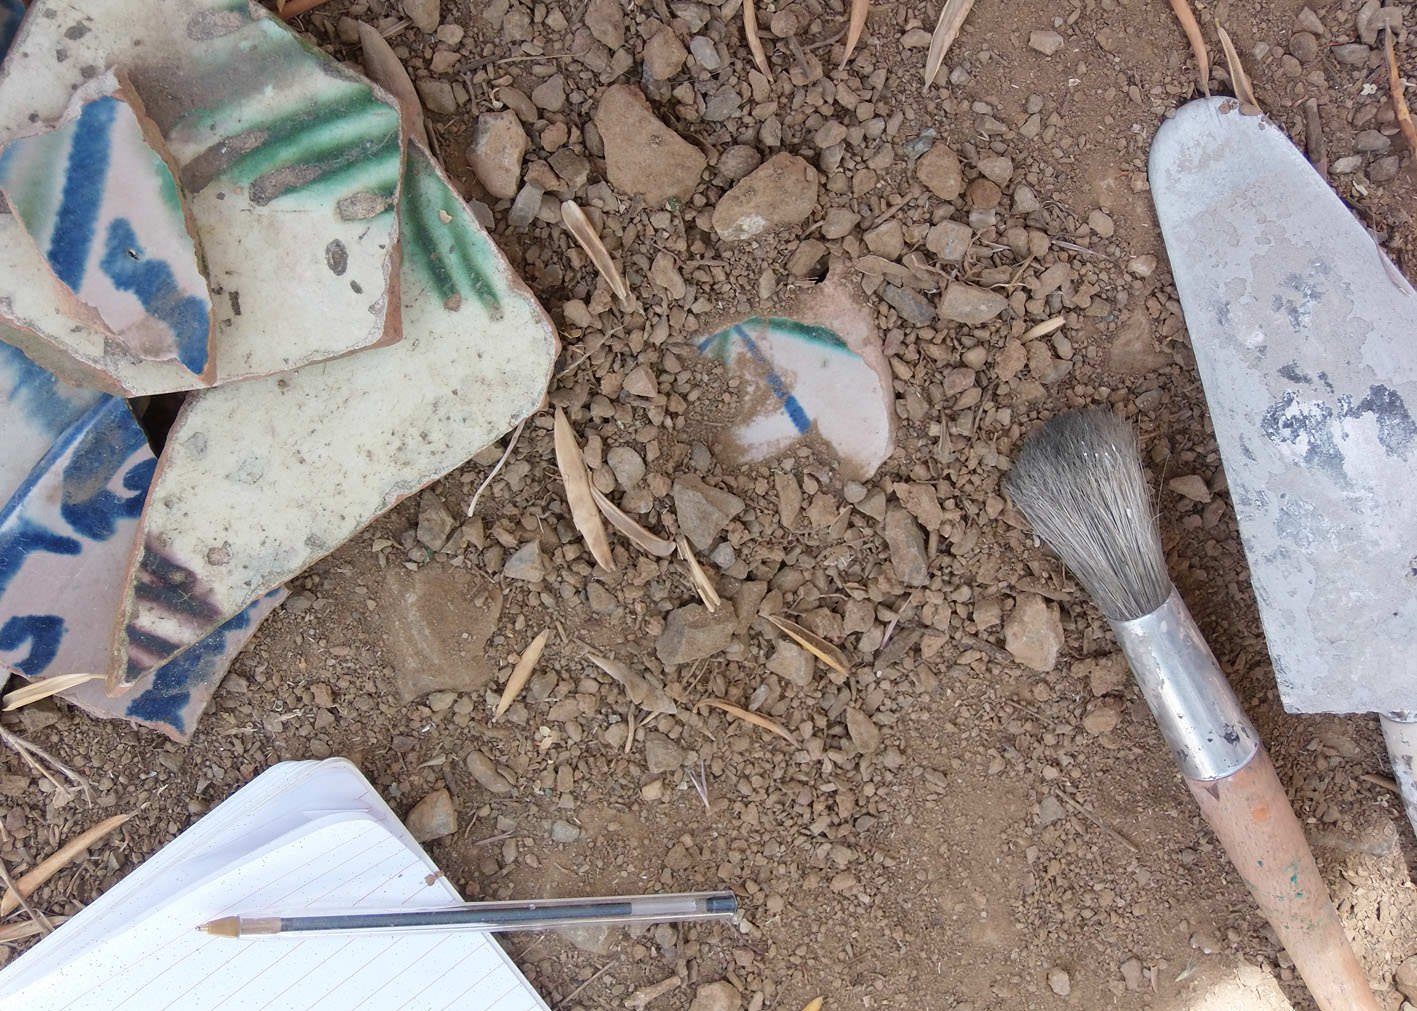 Archaeology on a small scale. Uncovering and recording pottery in the field.